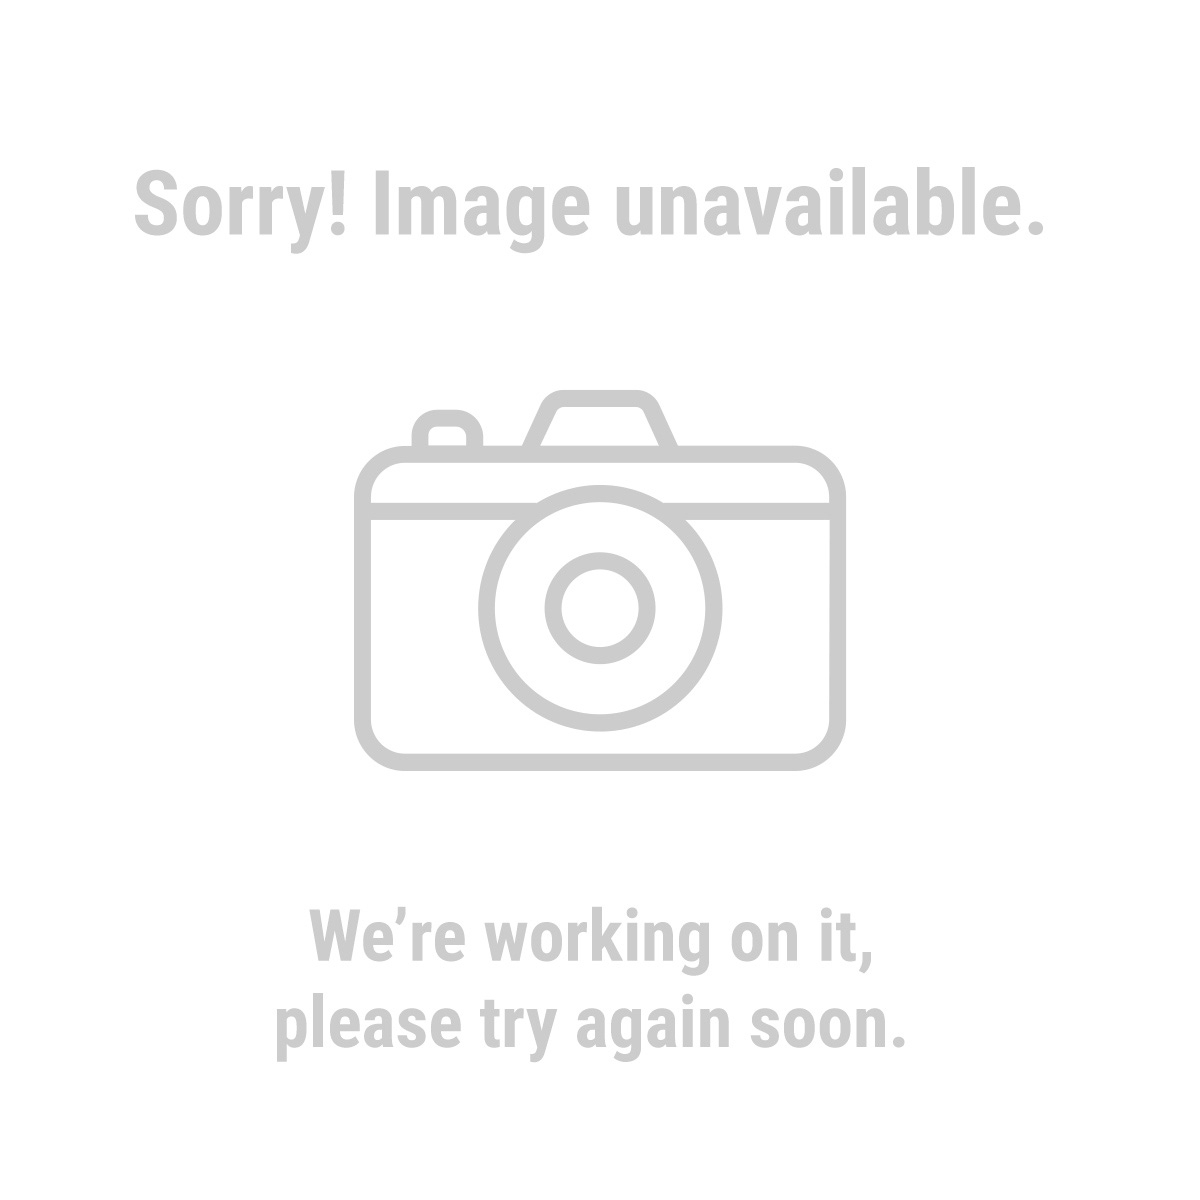 Portable 2 Car Canopies : Ft portable car canopy